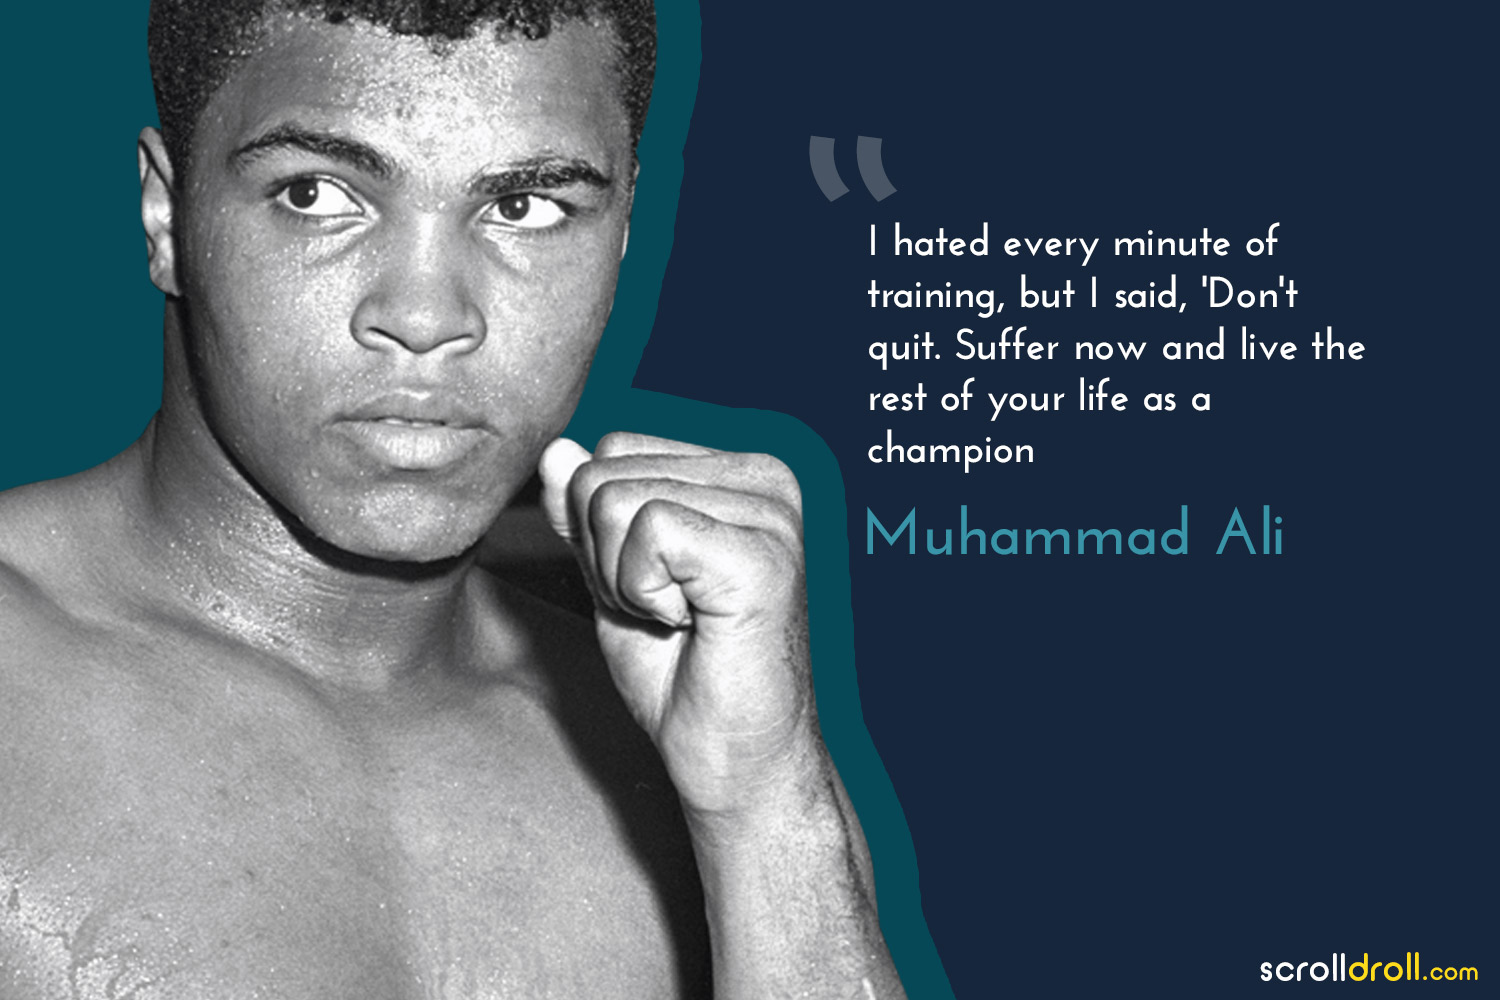 Powerful Quotes By Successful People-muhammad ali quotes